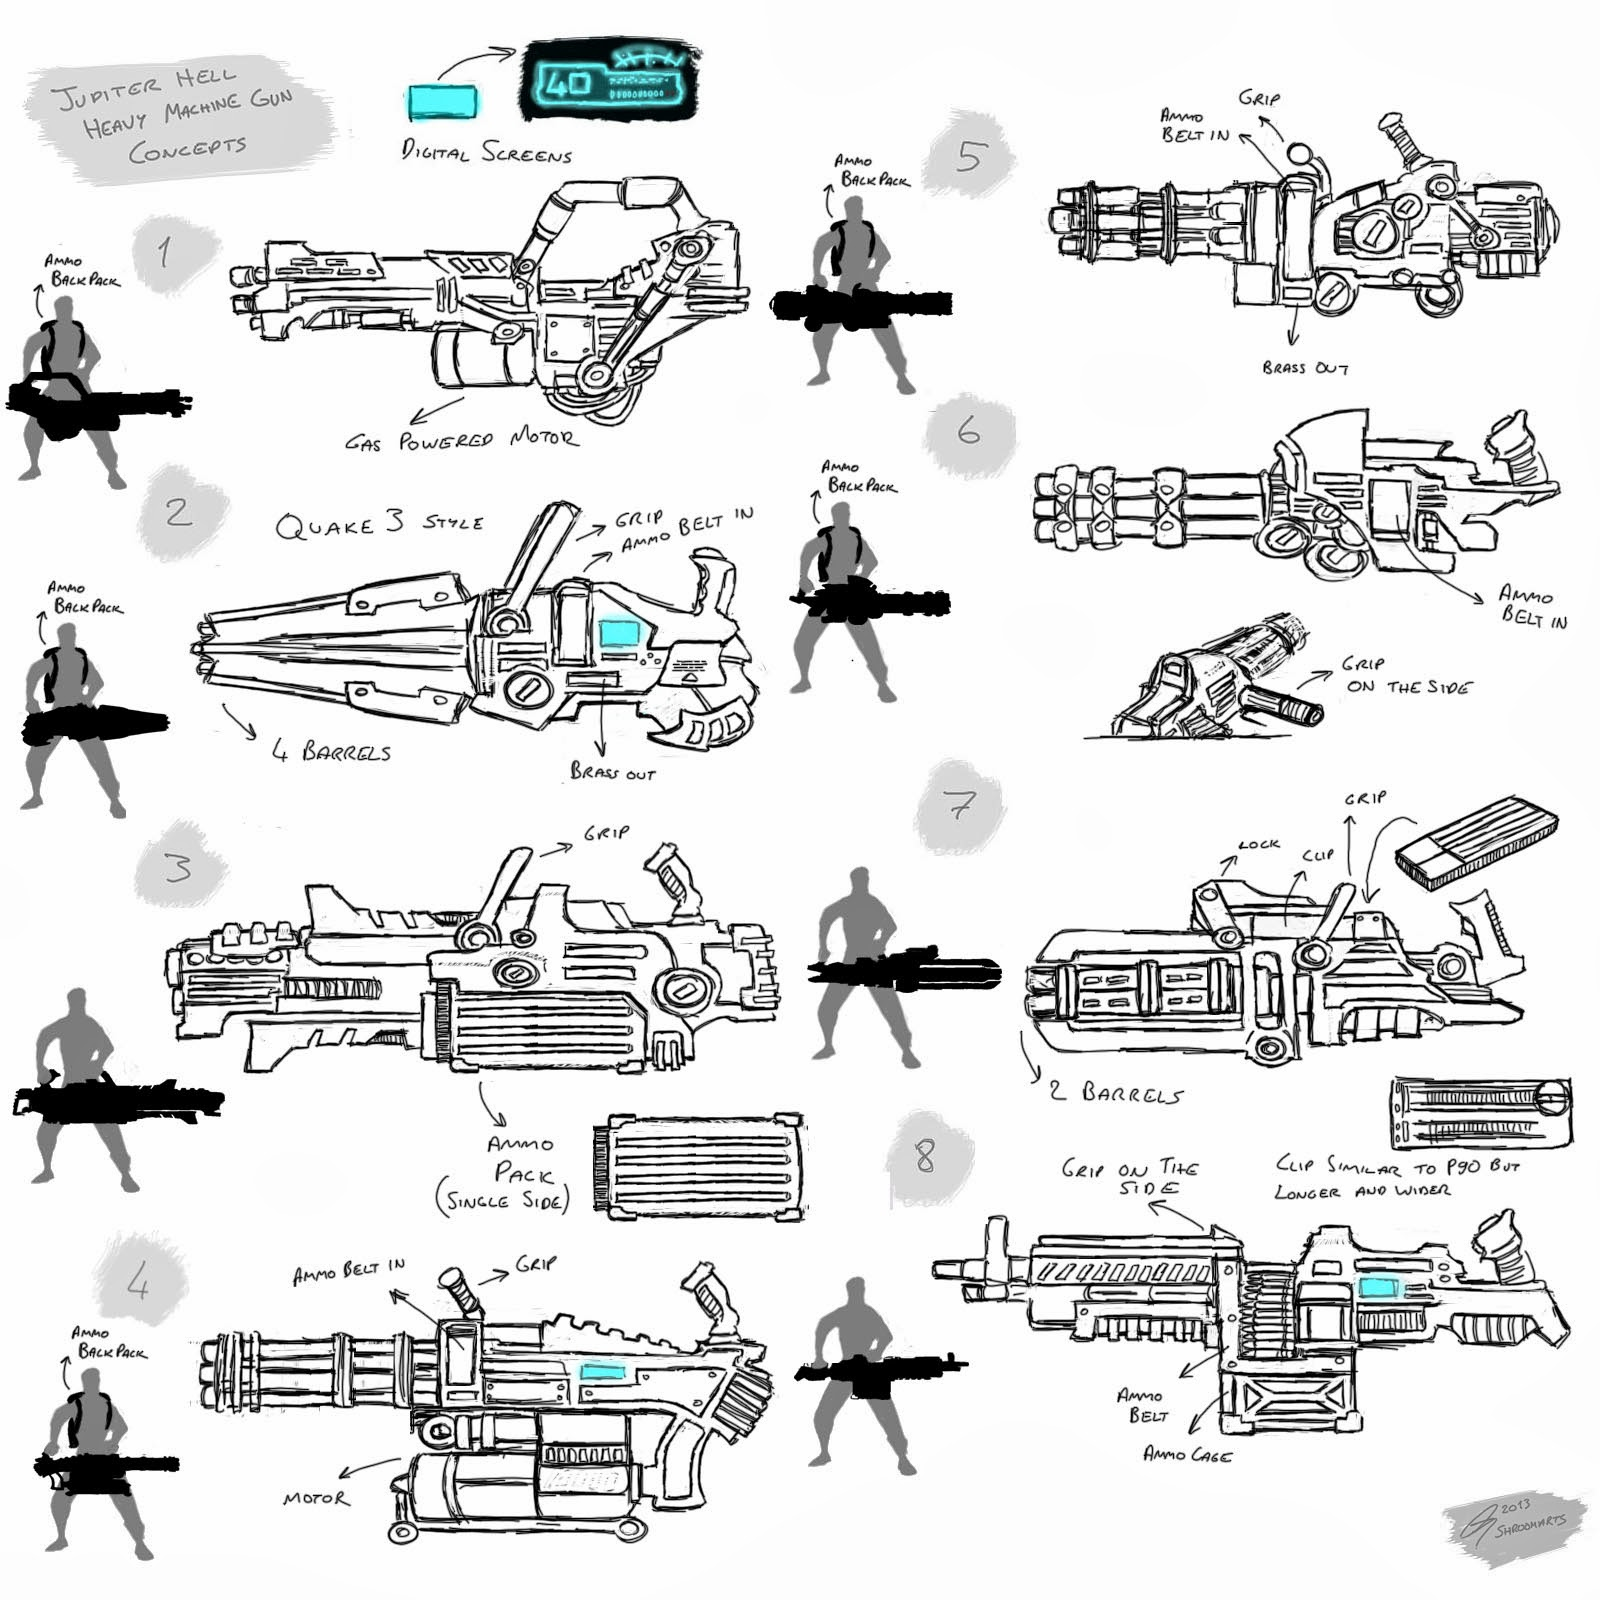 Jupiter Hell - Heavy Machine Gun concepts